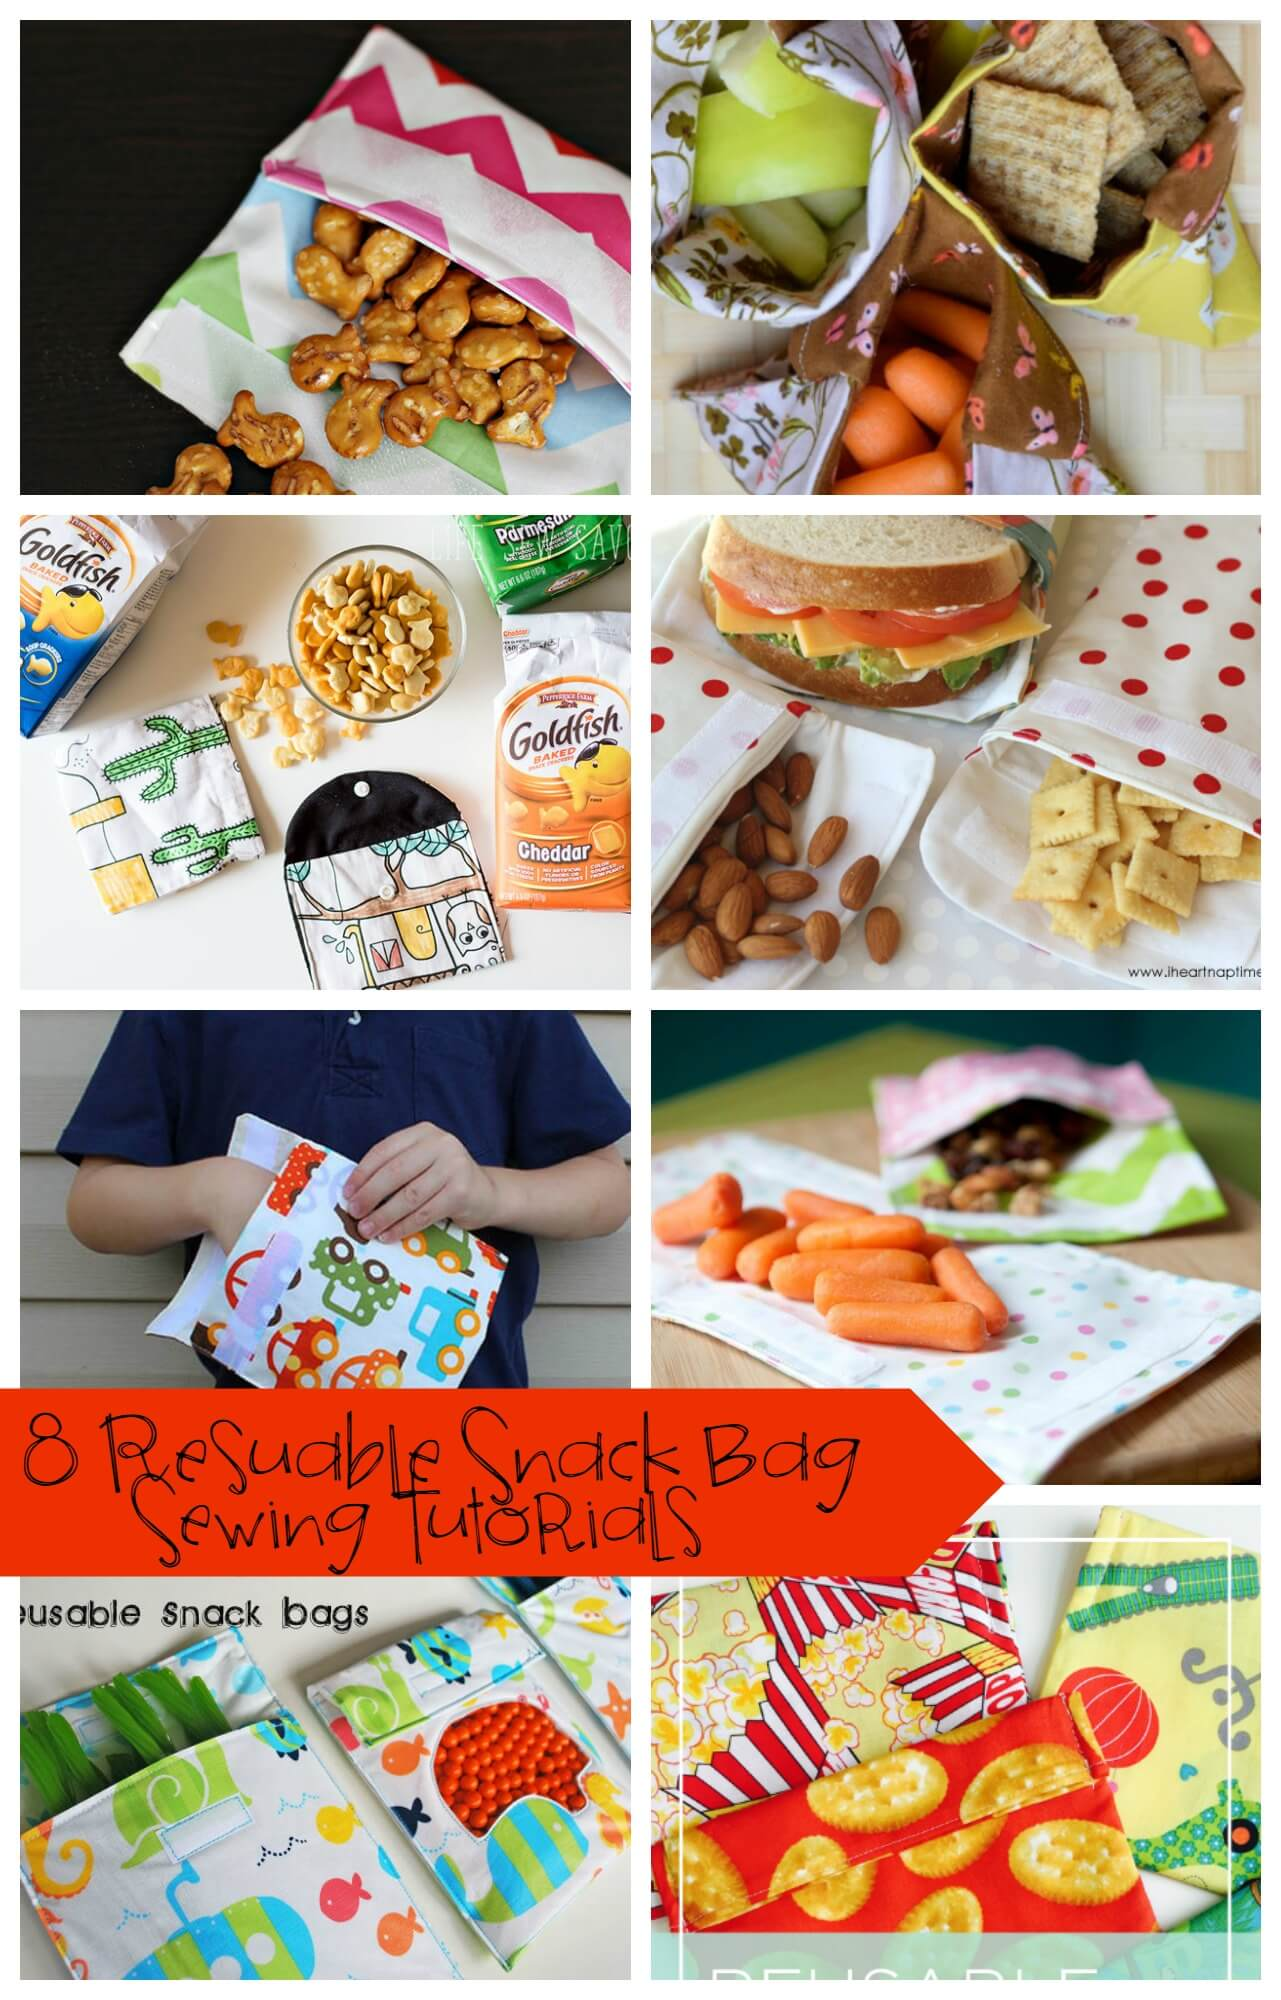 Reusable Snack Bag Tutorials from Life Sew Savory #GoldfishMoments AD